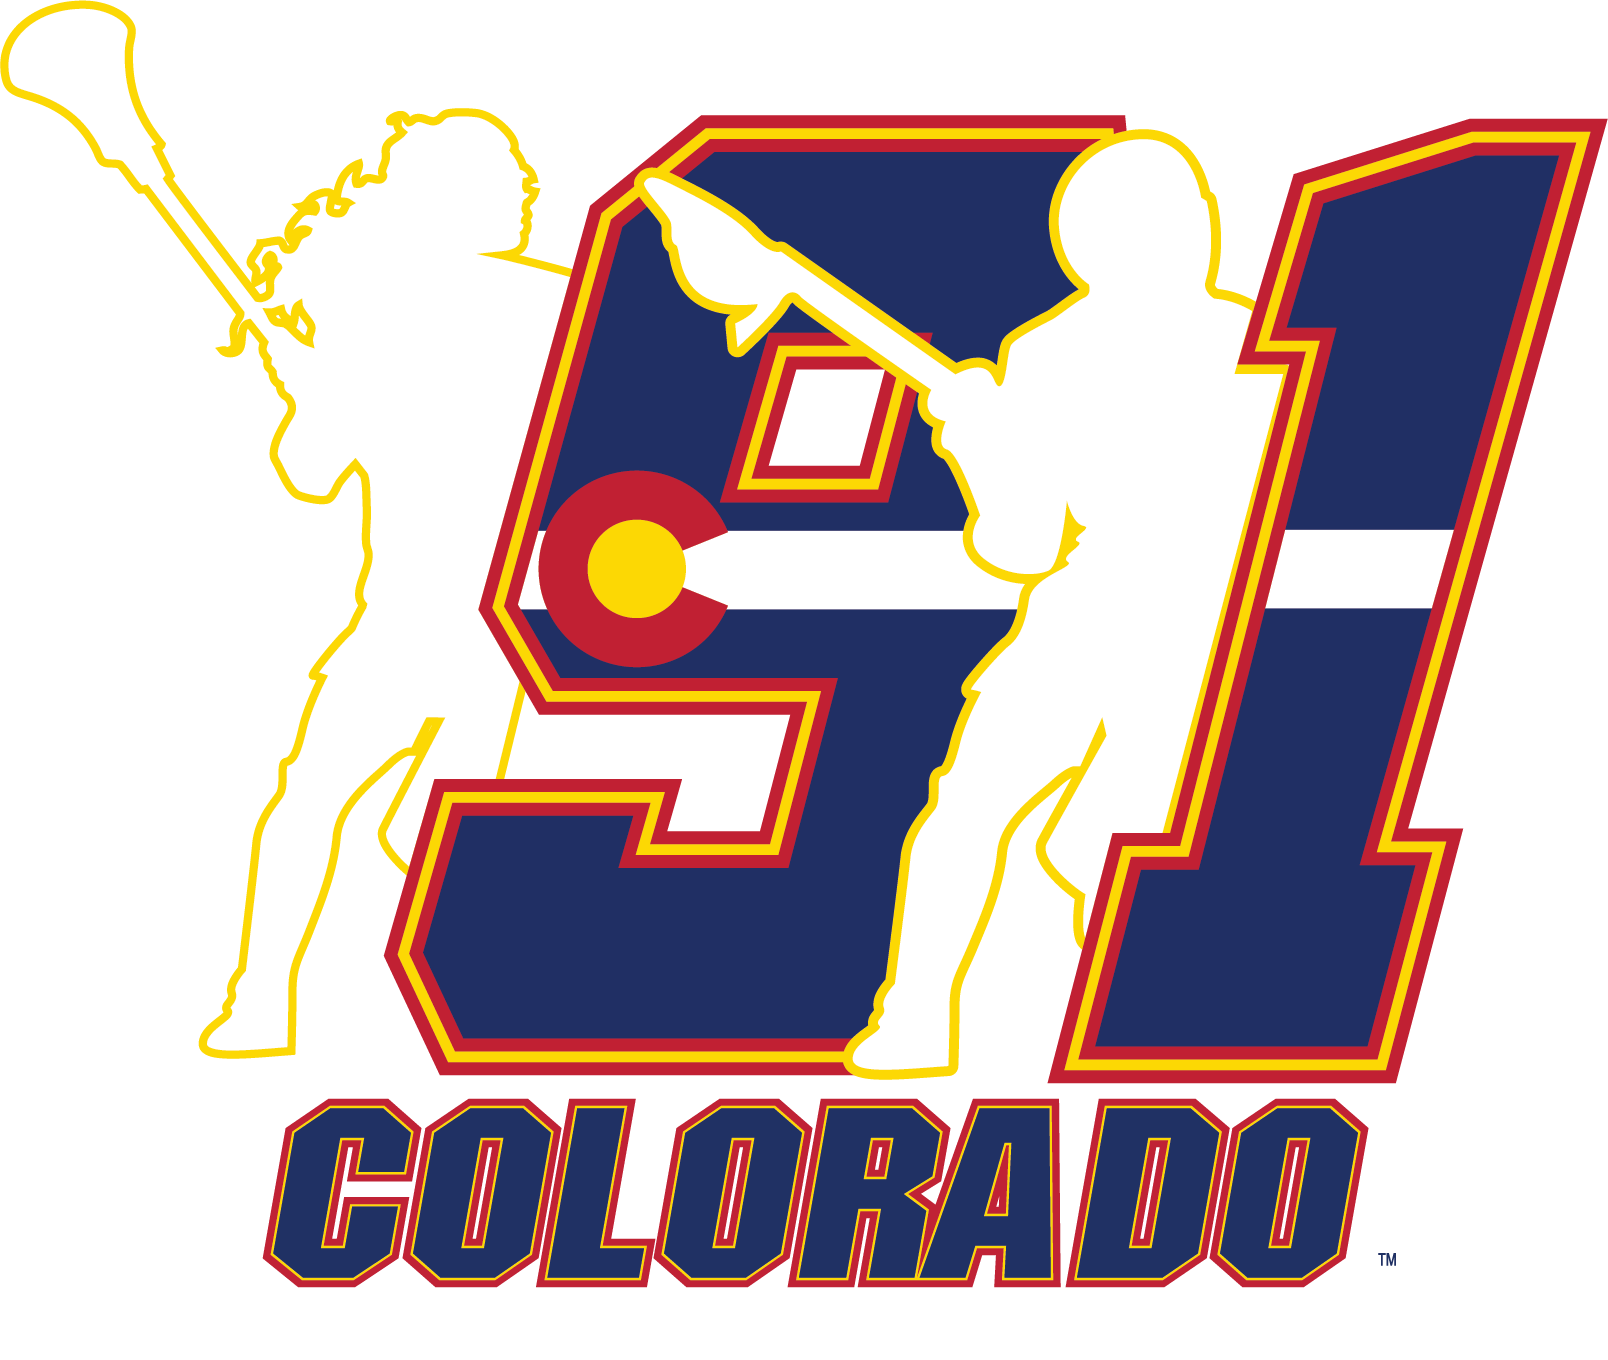 Team 91 Colorado